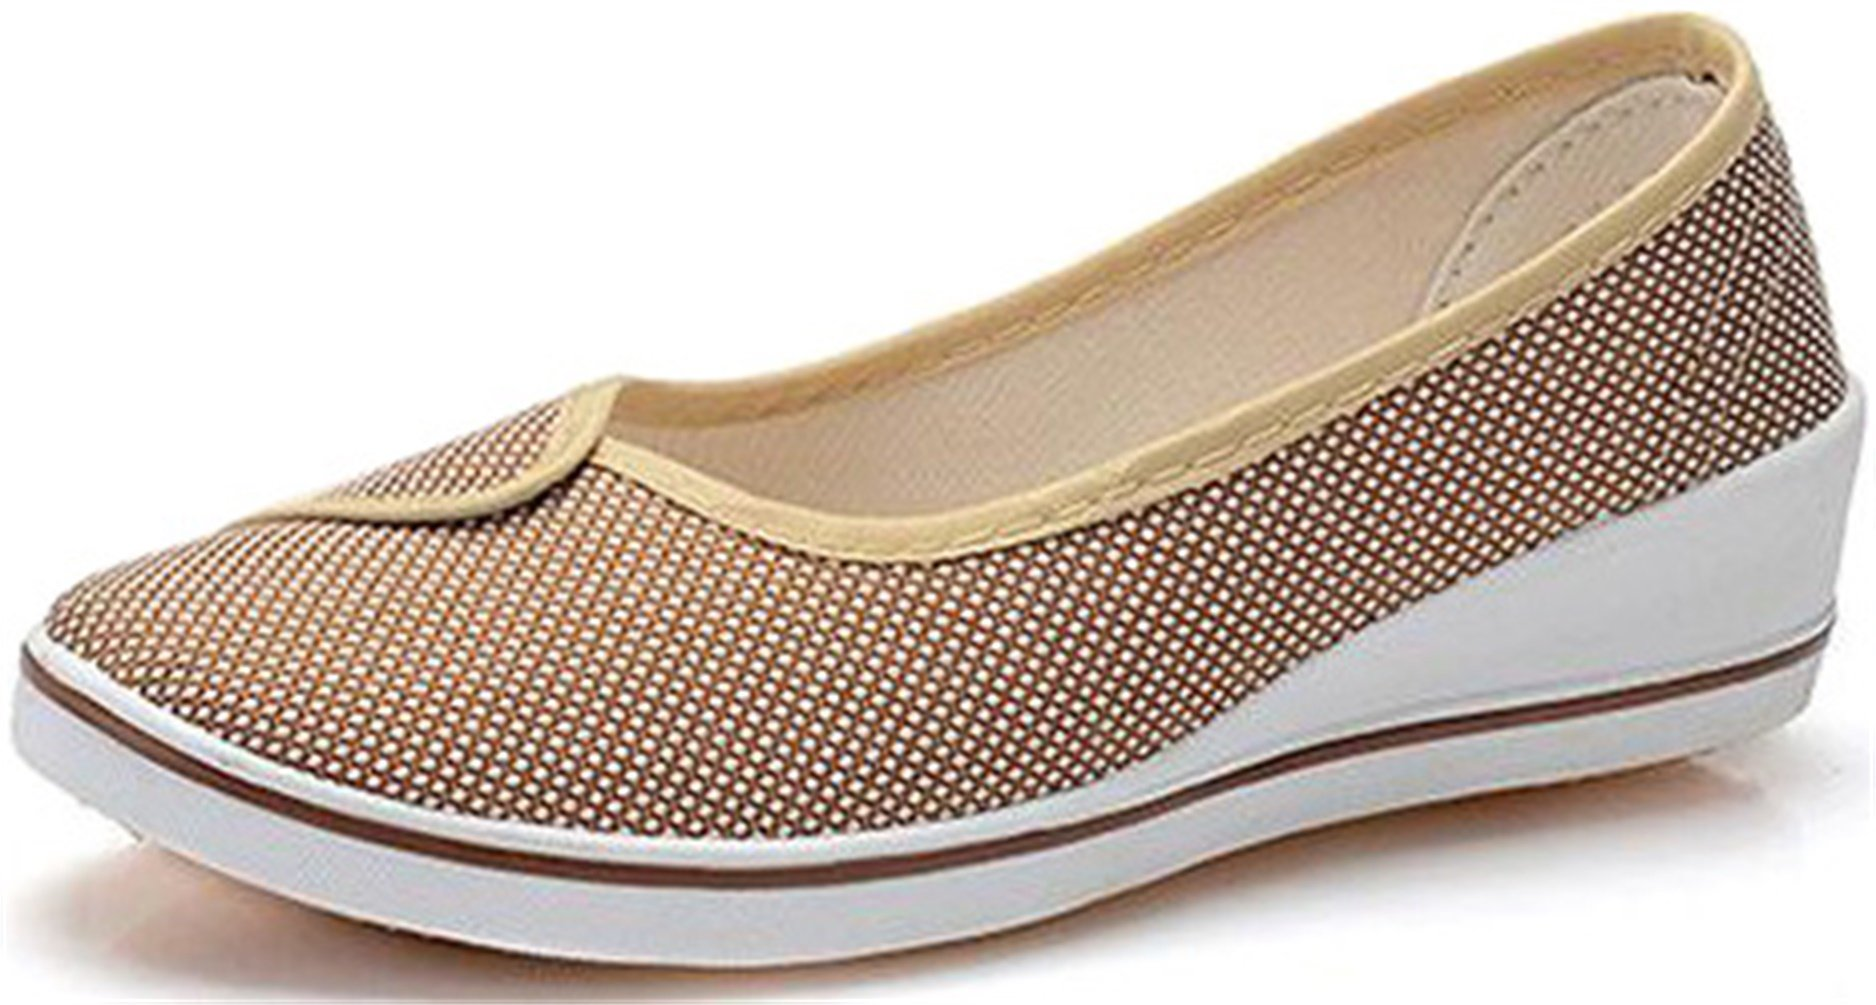 PPXID Women's Canvas Wedge Slip On Loafers Dancing Shoes-Beige 7.5 US Size